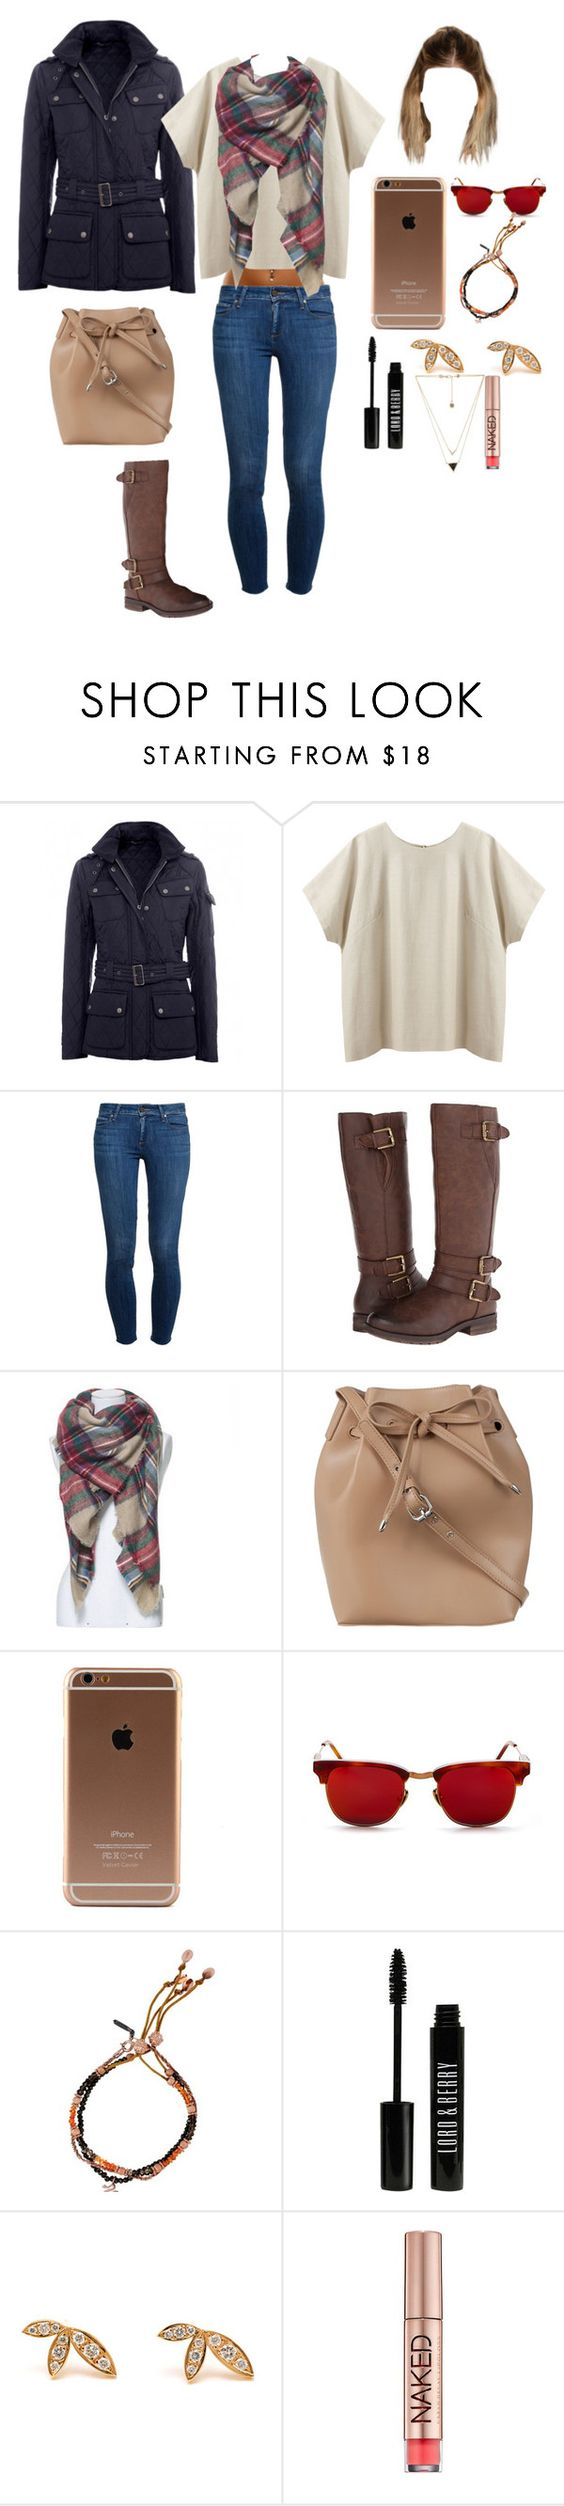 """Untitled #462"" by tate16 ❤ liked on Polyvore featuring Barbour, La Garçonne Moderne, Paige Denim, Naturalizer, ZALORA, Vanguard, Tada & Toy, Lord & Berry, Jagga and Urban Decay"